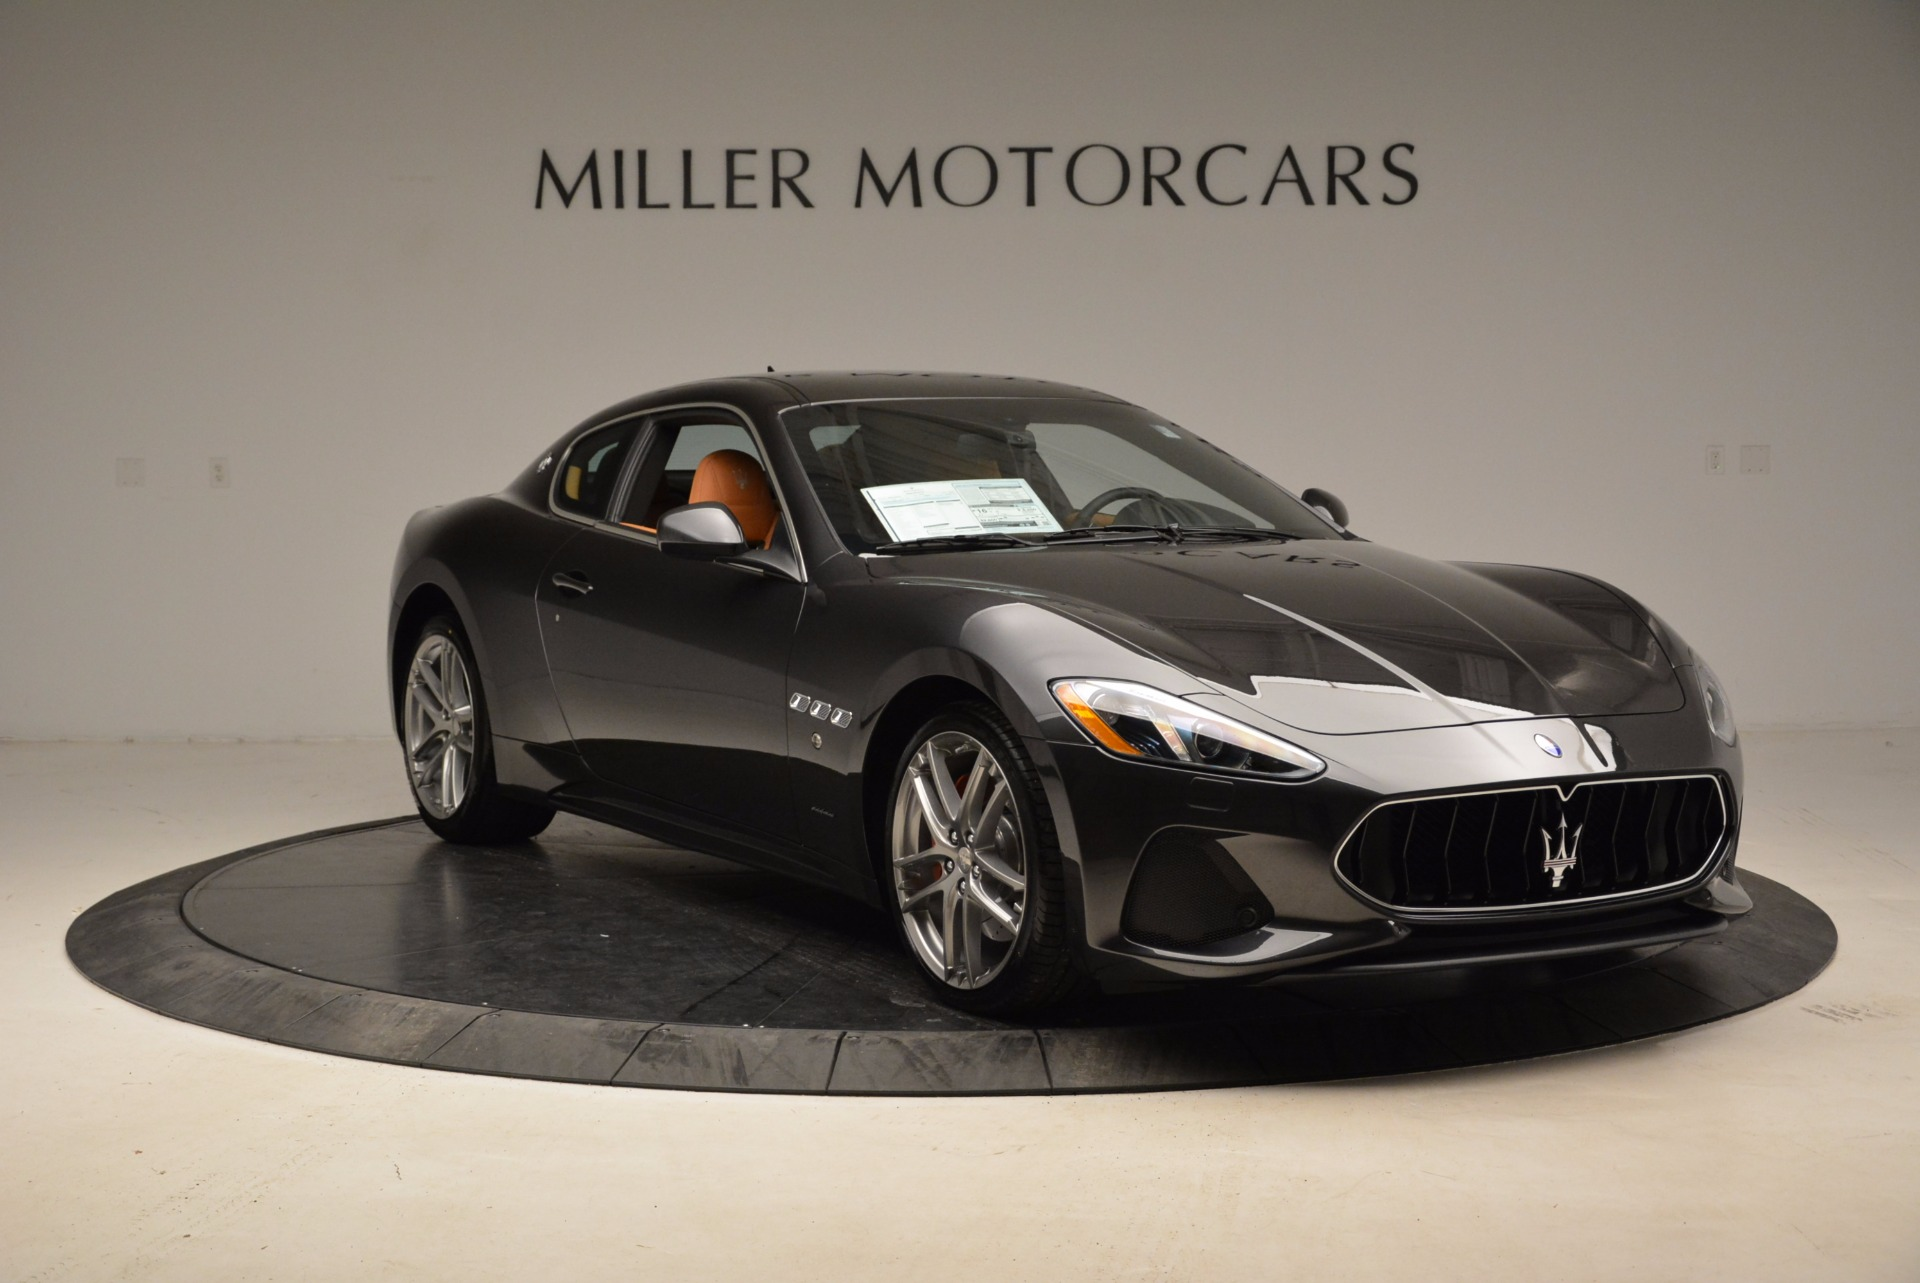 New 2018 Maserati GranTurismo Sport Coupe For Sale In Westport, CT 1771_p11